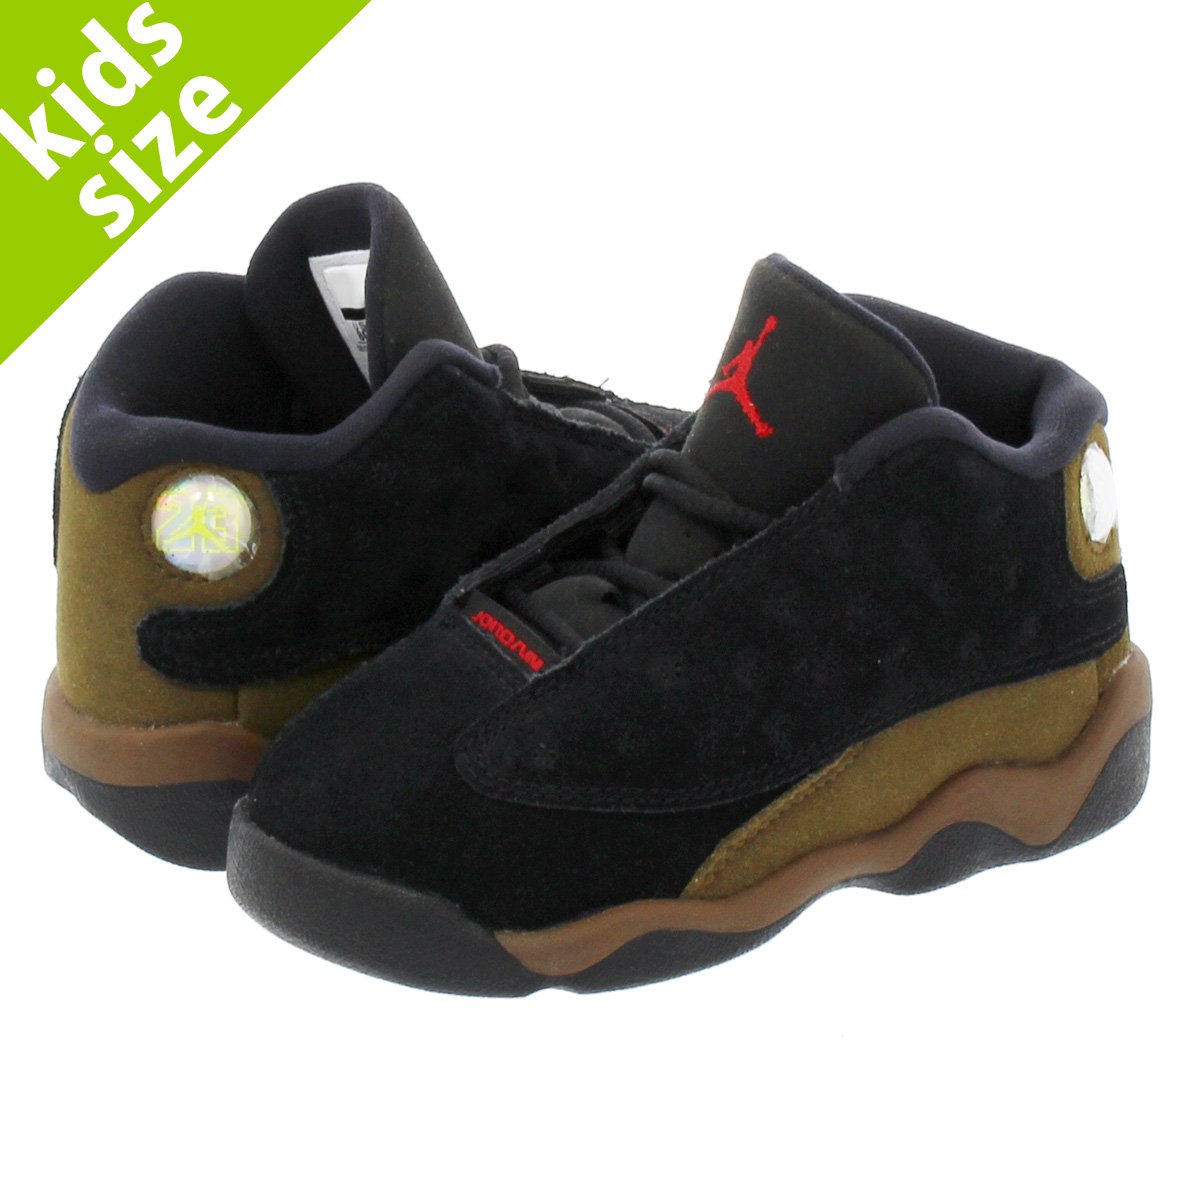 info for ad346 5d74c NIKE AIR JORDAN 13 RETRO BT Nike Air Jordan 13 nostalgic BT BLACK/TRUE  RED/LIGHT OLIVE/WHITE